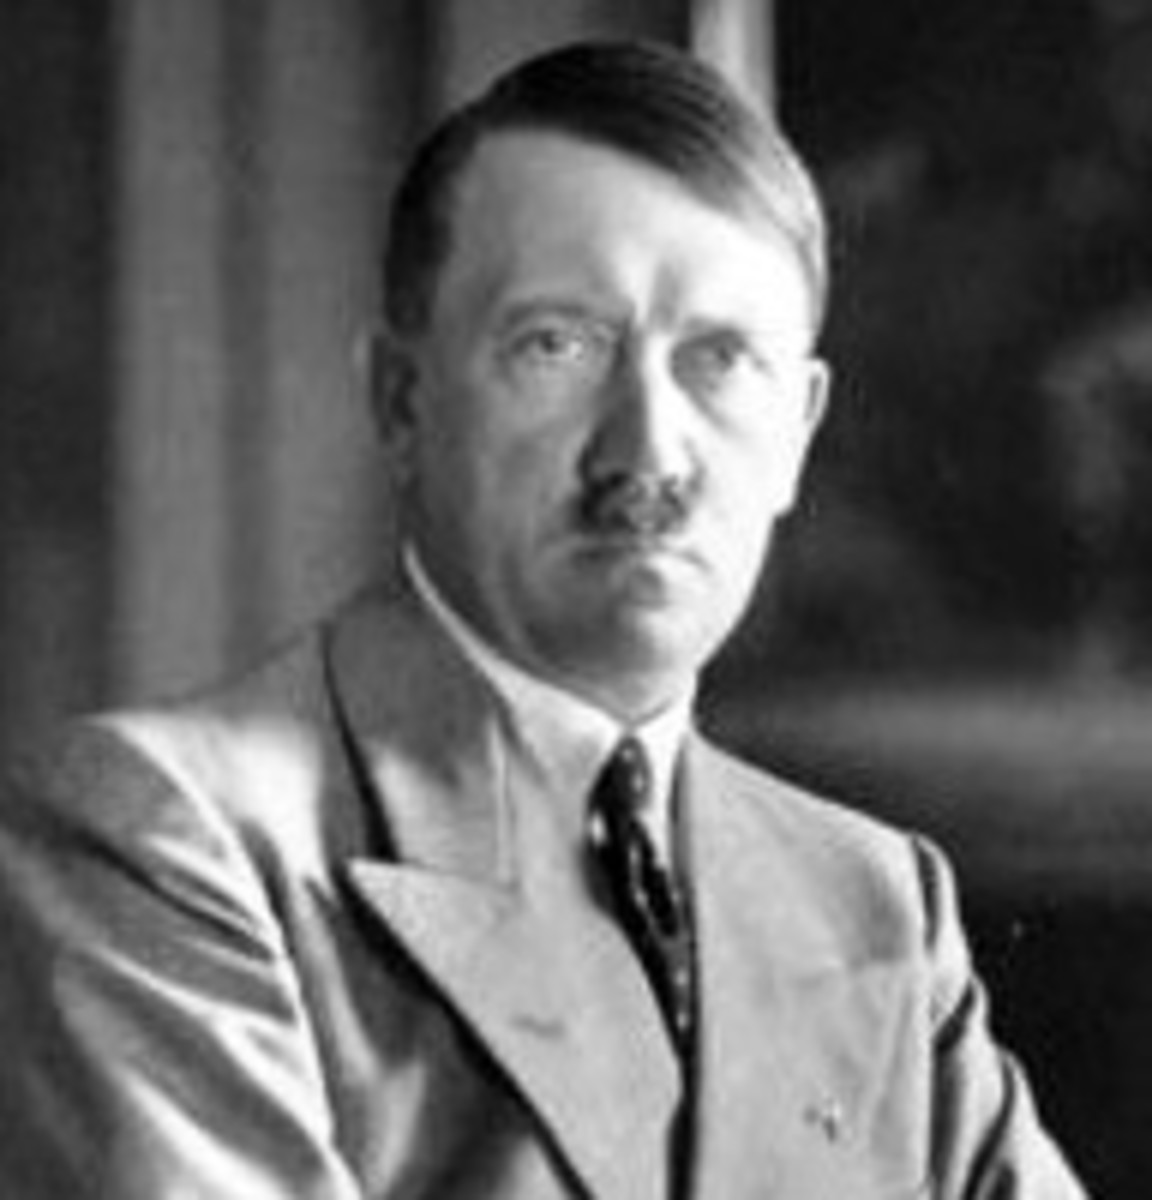 Was Hitler an Atheist or a Christian?